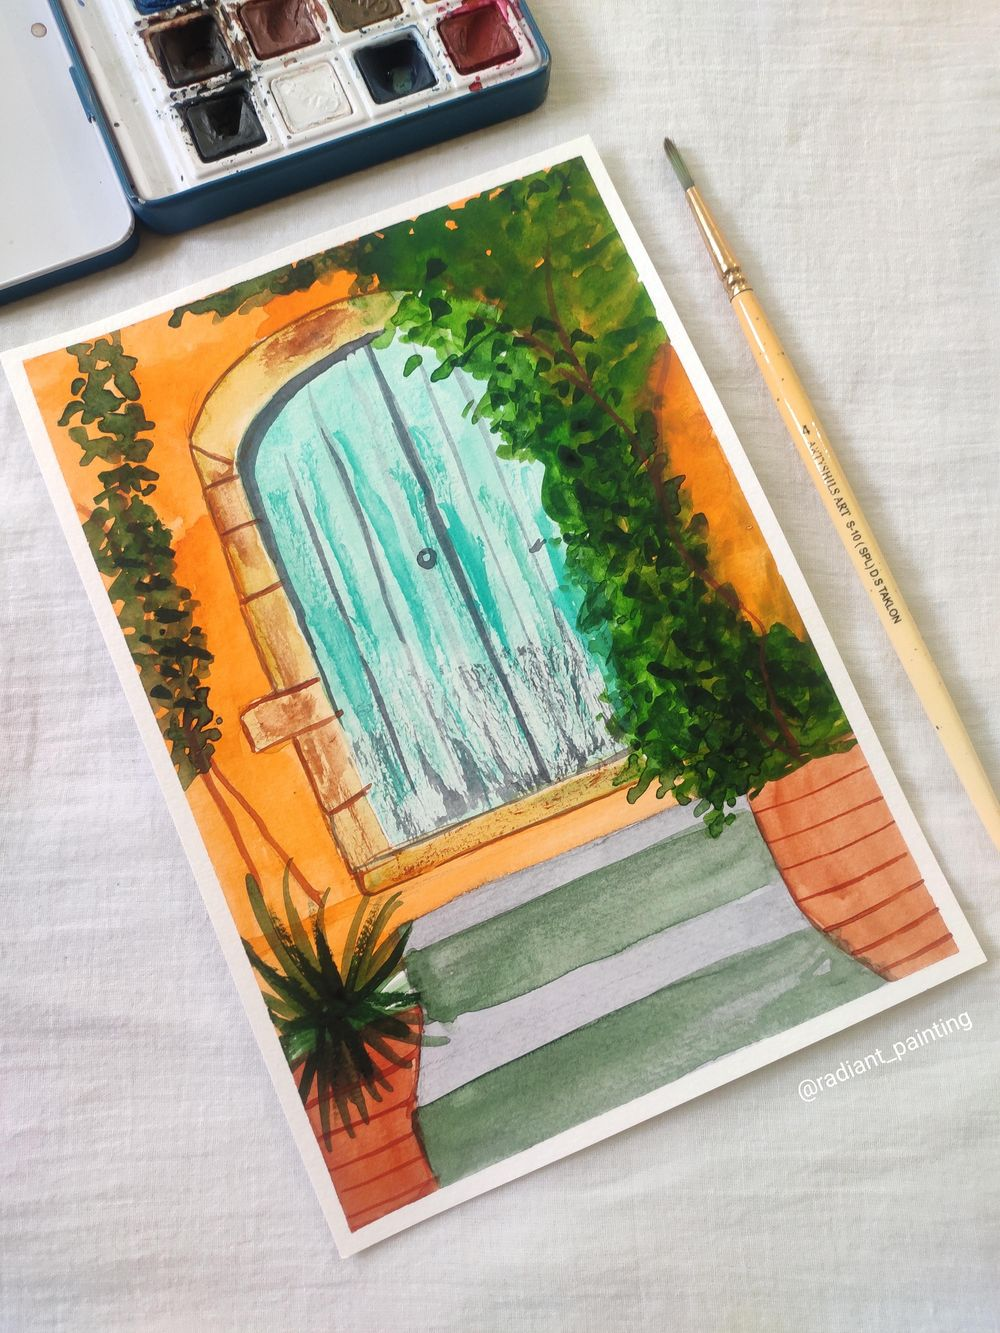 Watercolor Rustic Old Doors - image 2 - student project